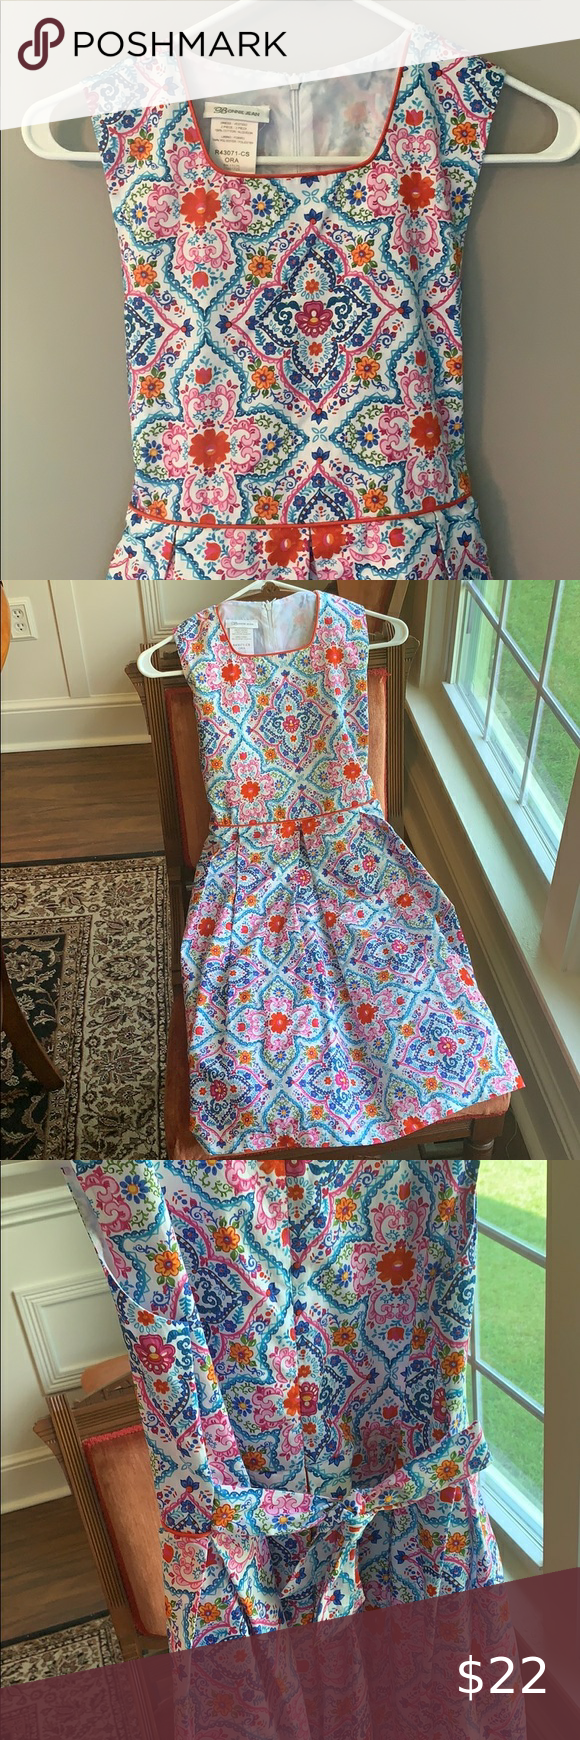 Girls Dress Size 16 Girl S Perfect Condition Size 16 Worn Once For About 2 Hours Bonnie Jean Dresses Size 16 Dresses Girls Dresses Size 16 Girls Dresses [ 1740 x 580 Pixel ]